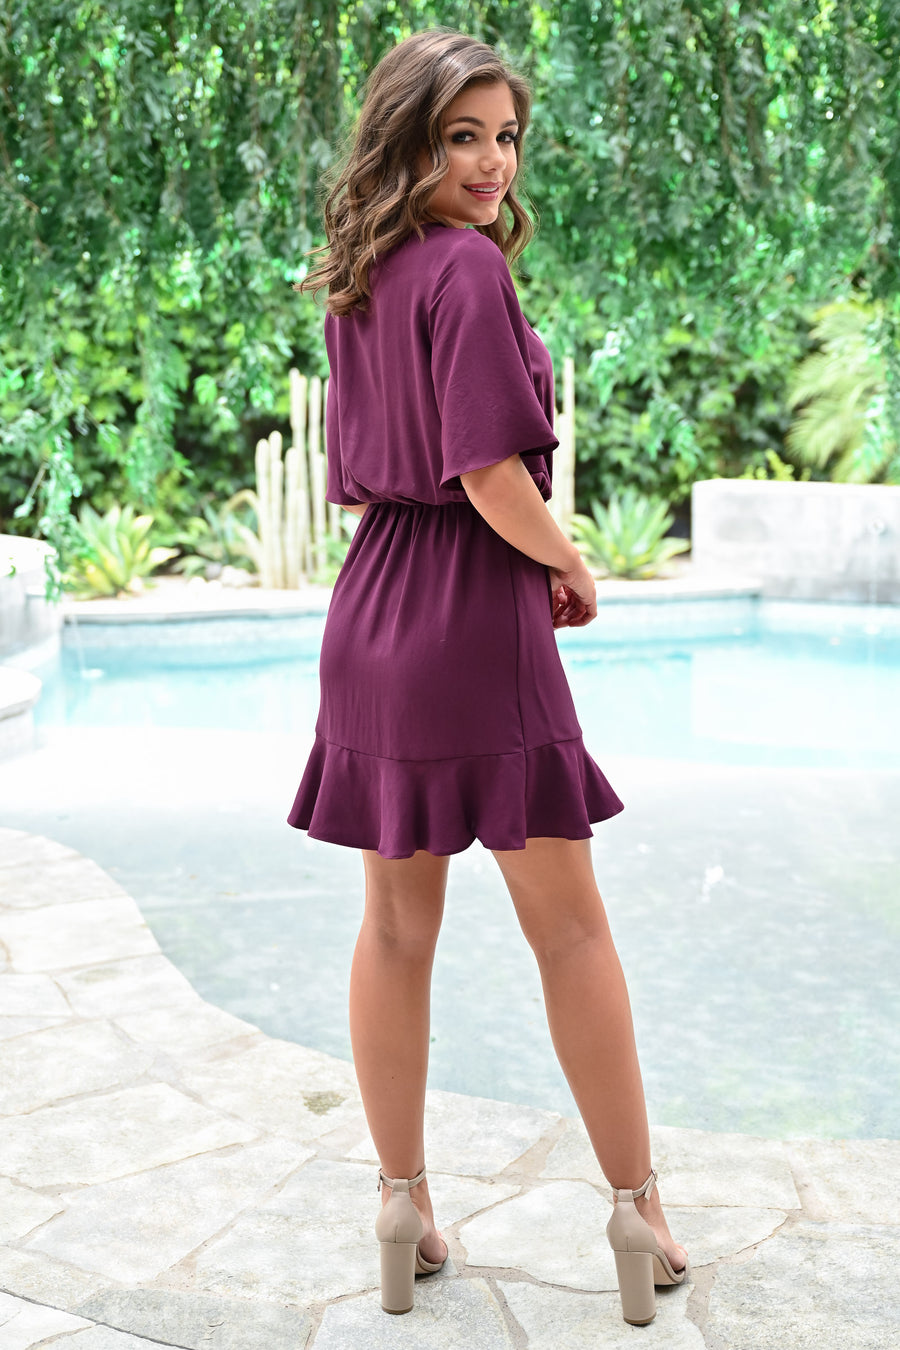 Pour The Merlot Dress - Wine womens trendy flutter sleeve wrap ruched waist dress closet candy front